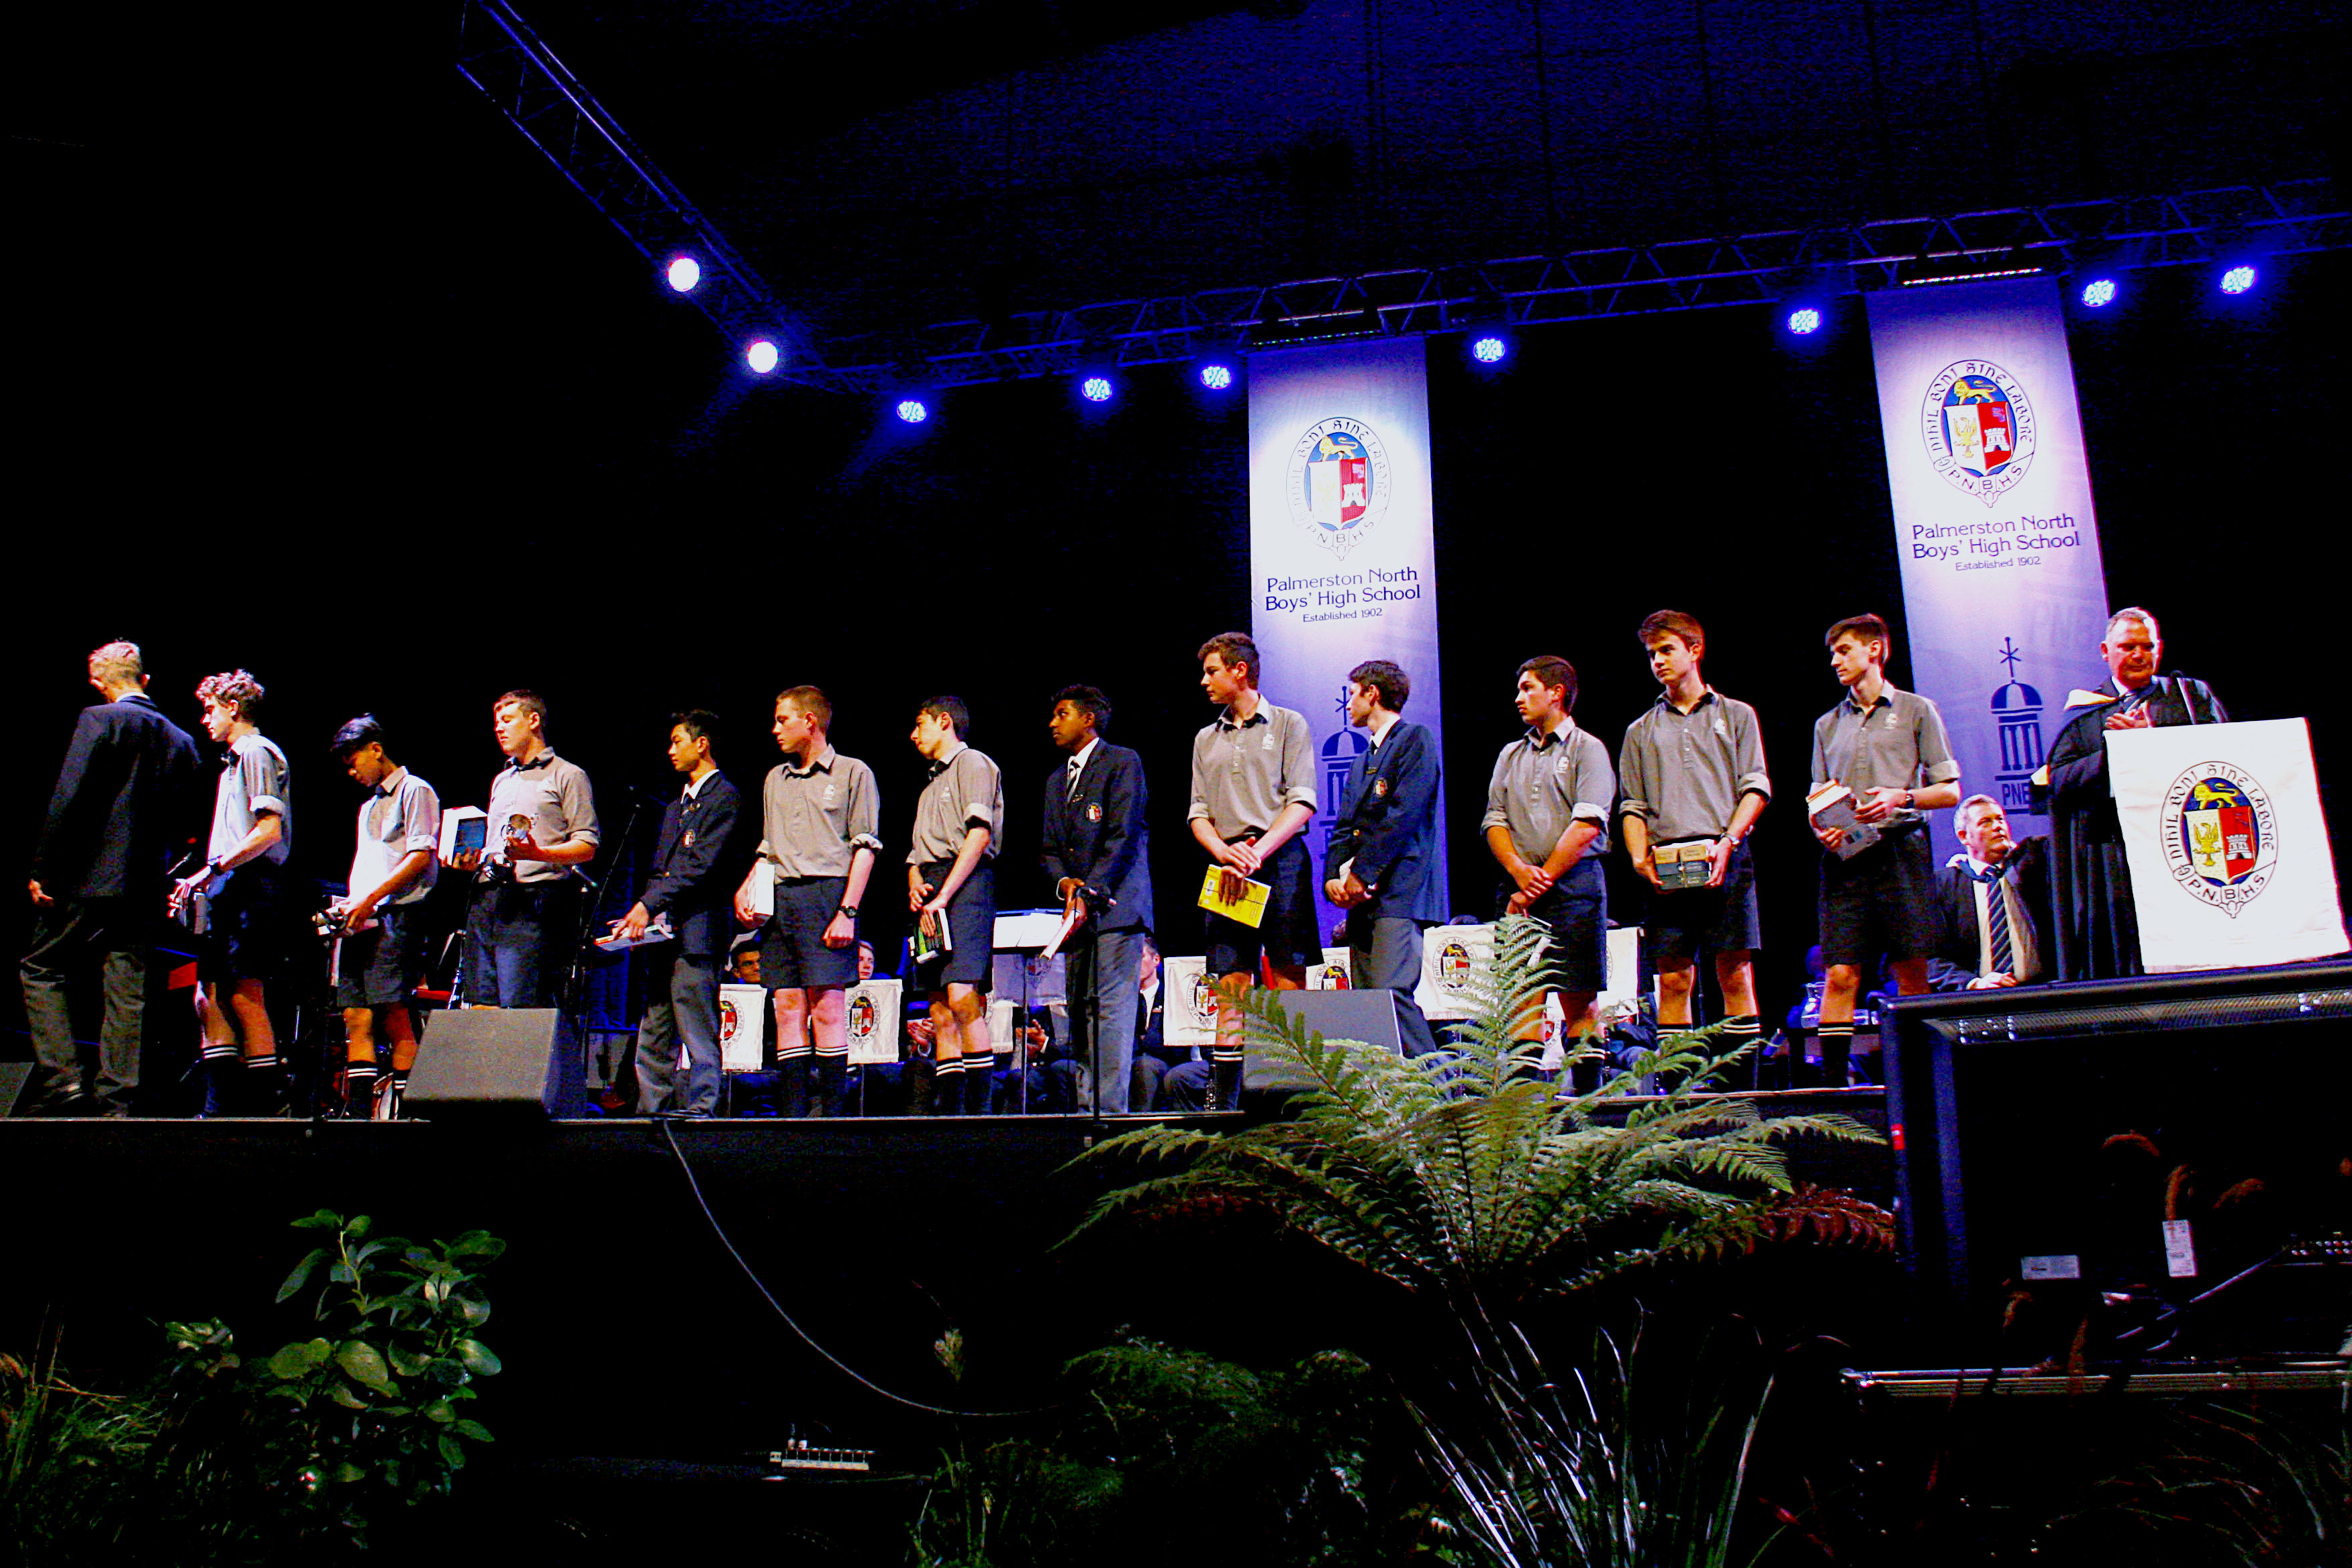 PNBHS 2019 Full School Prizegiving, Arena 1, Palmerston North Image by Gary Rodgers / Magnum Images  www.magnum-images.co.nz